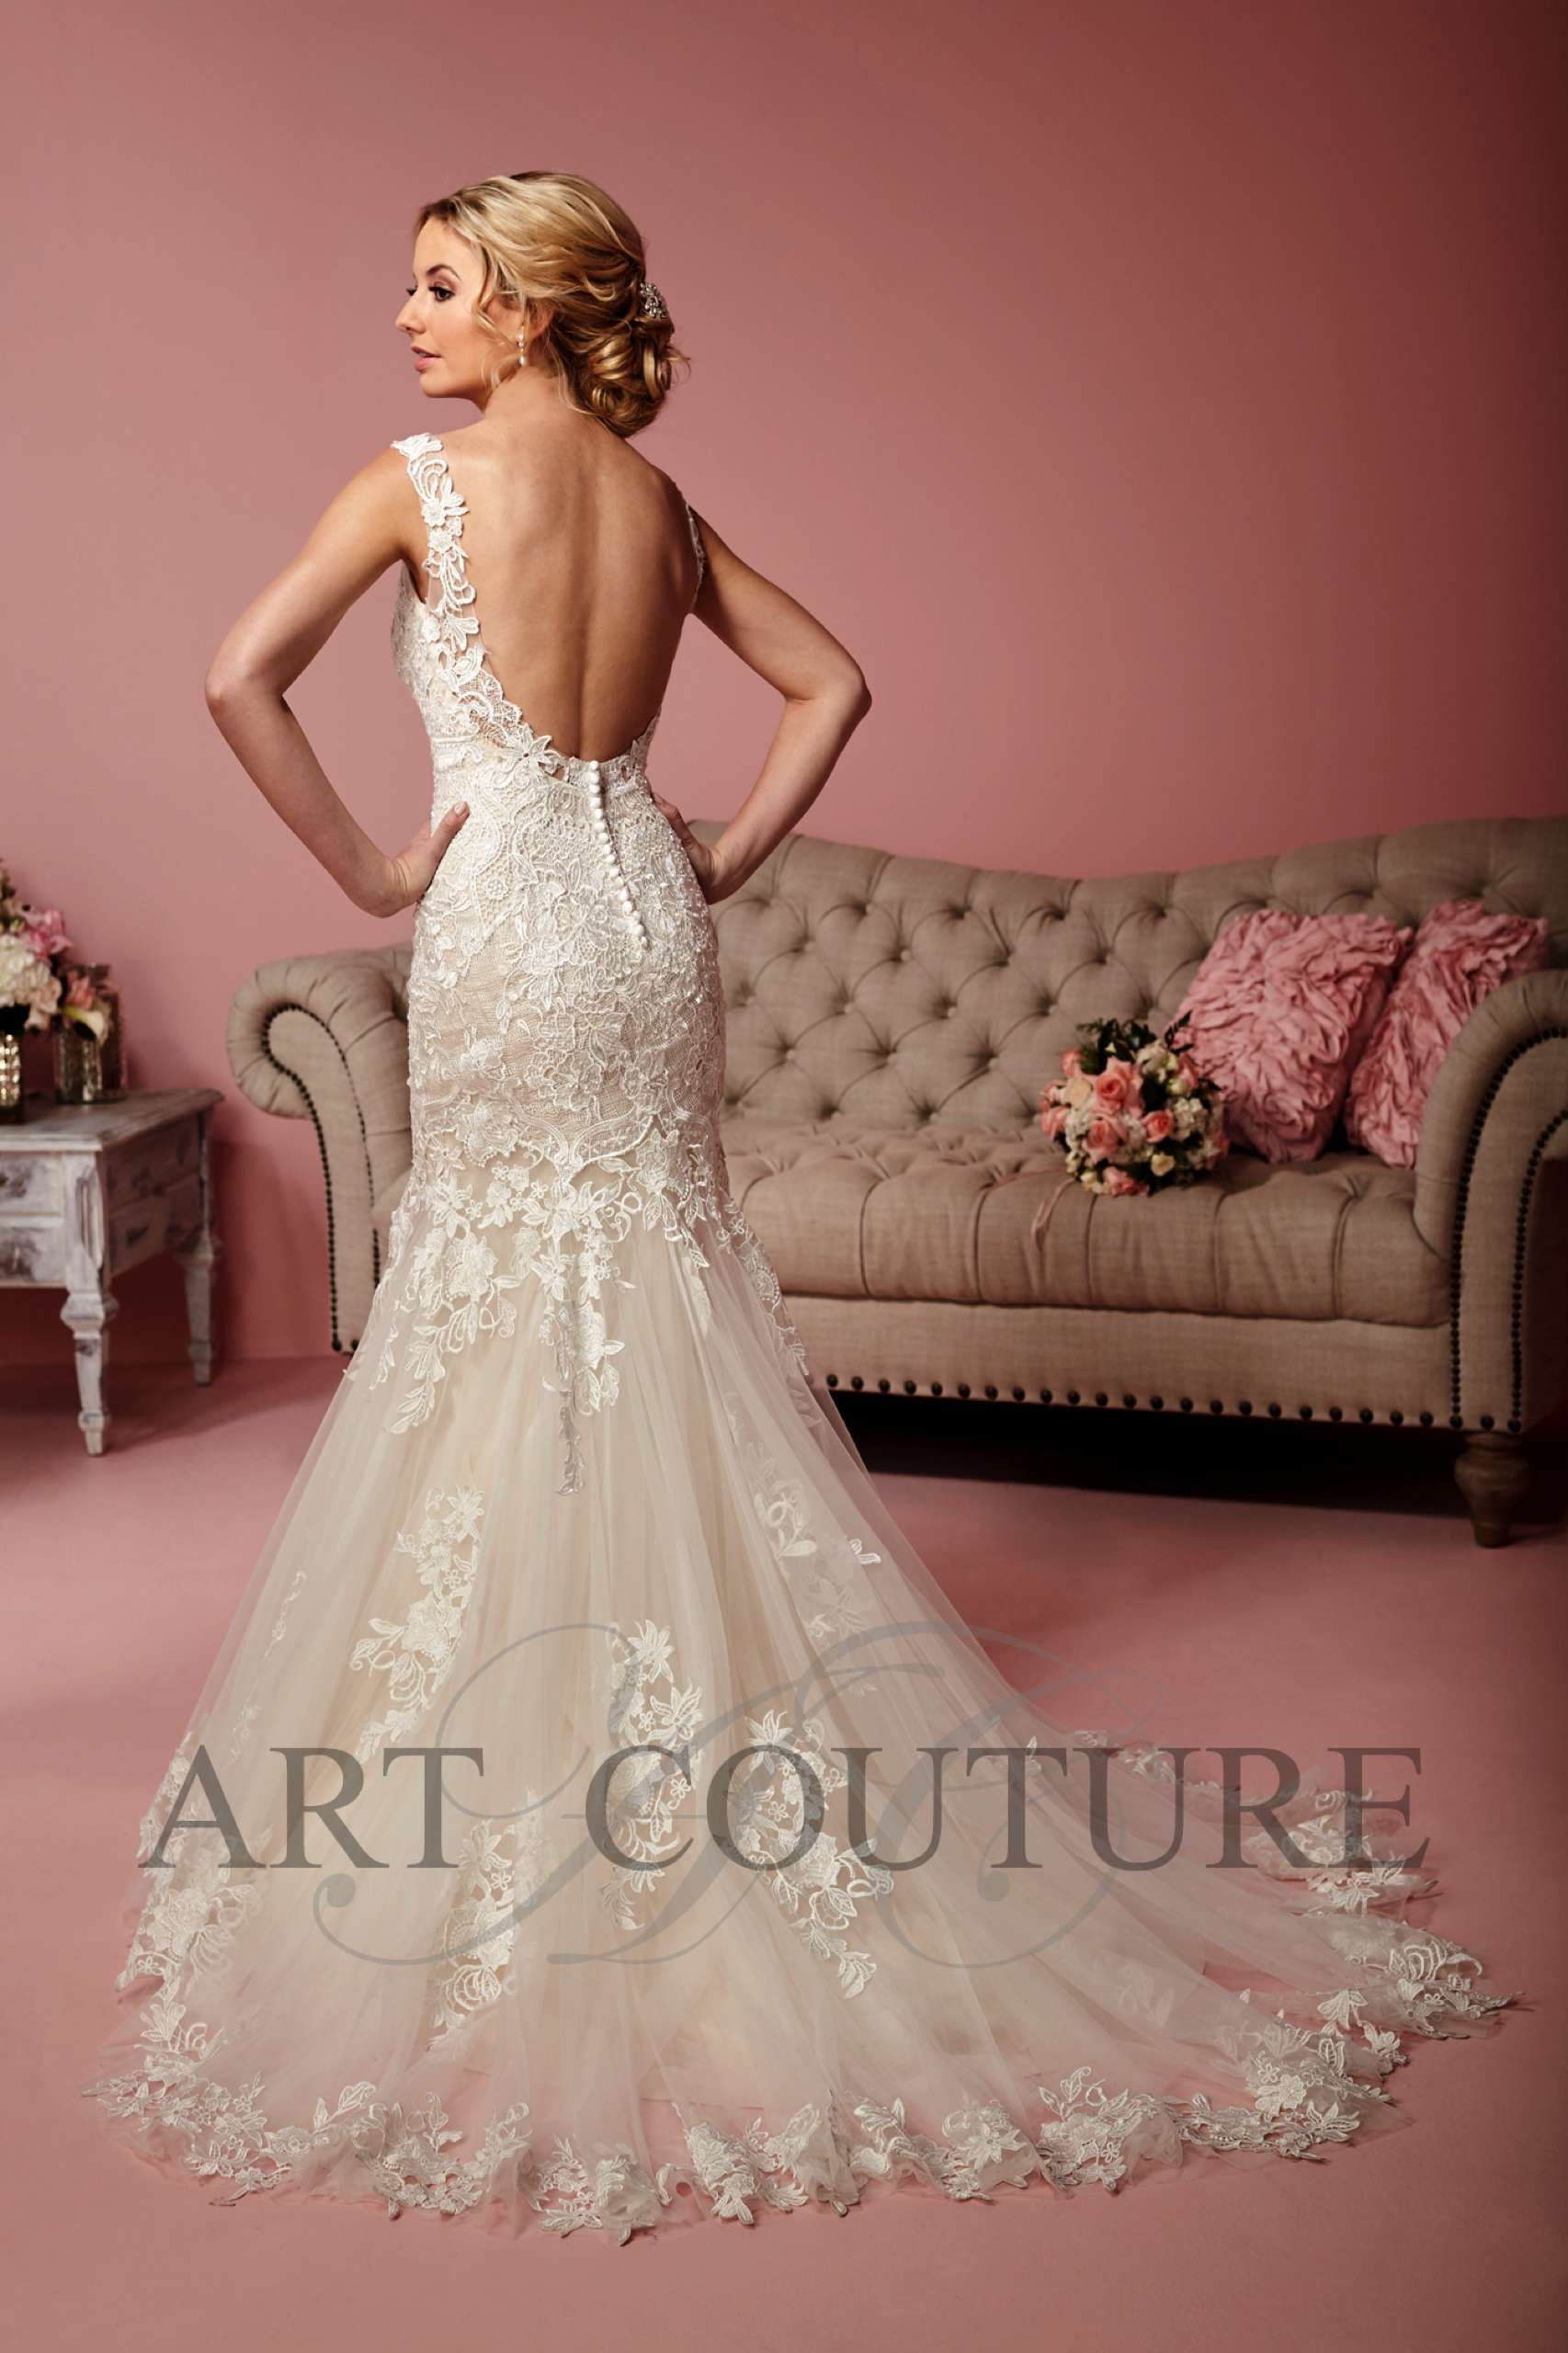 A distinctive beaded lace fishtail wedding dress with exposed back